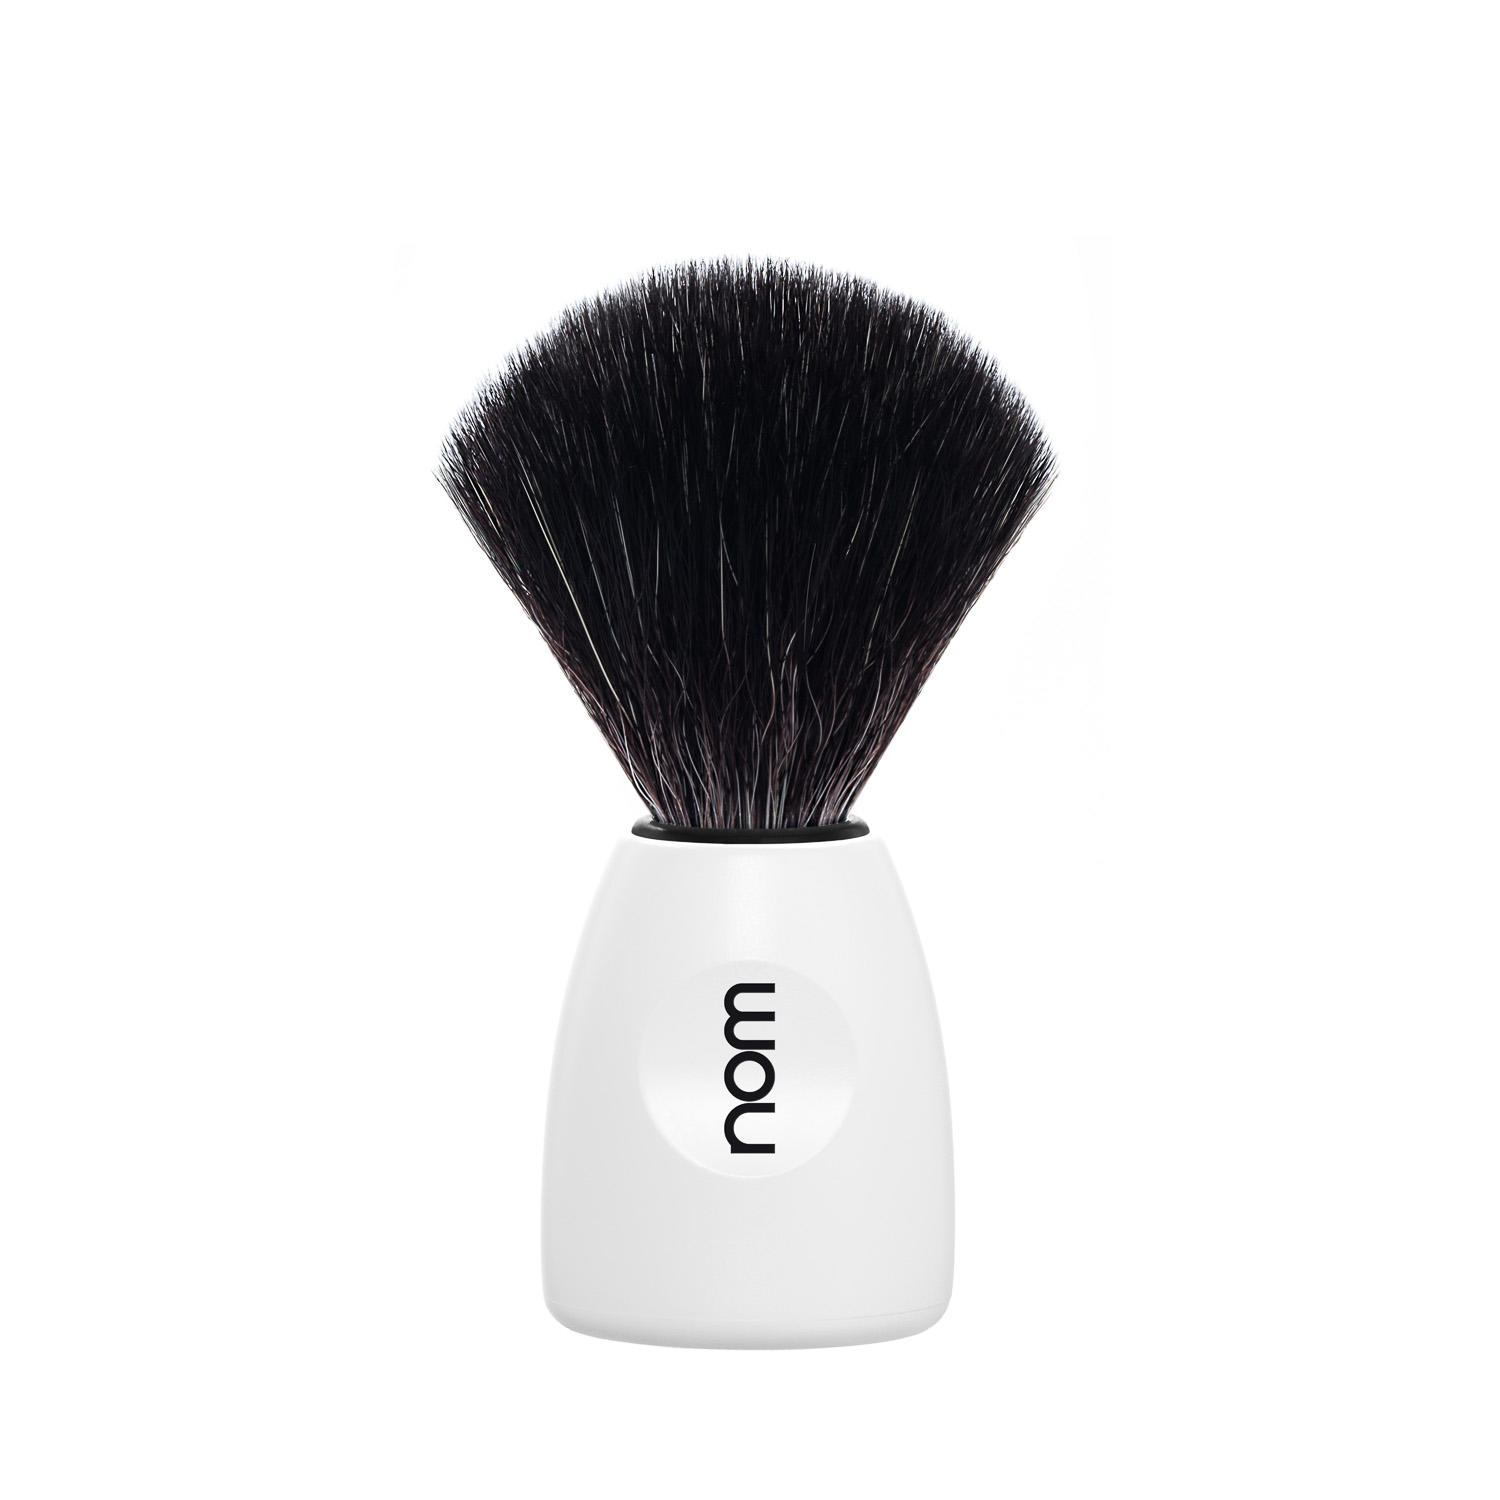 nom, LASSE in White with Black Fibre Shaving Brush